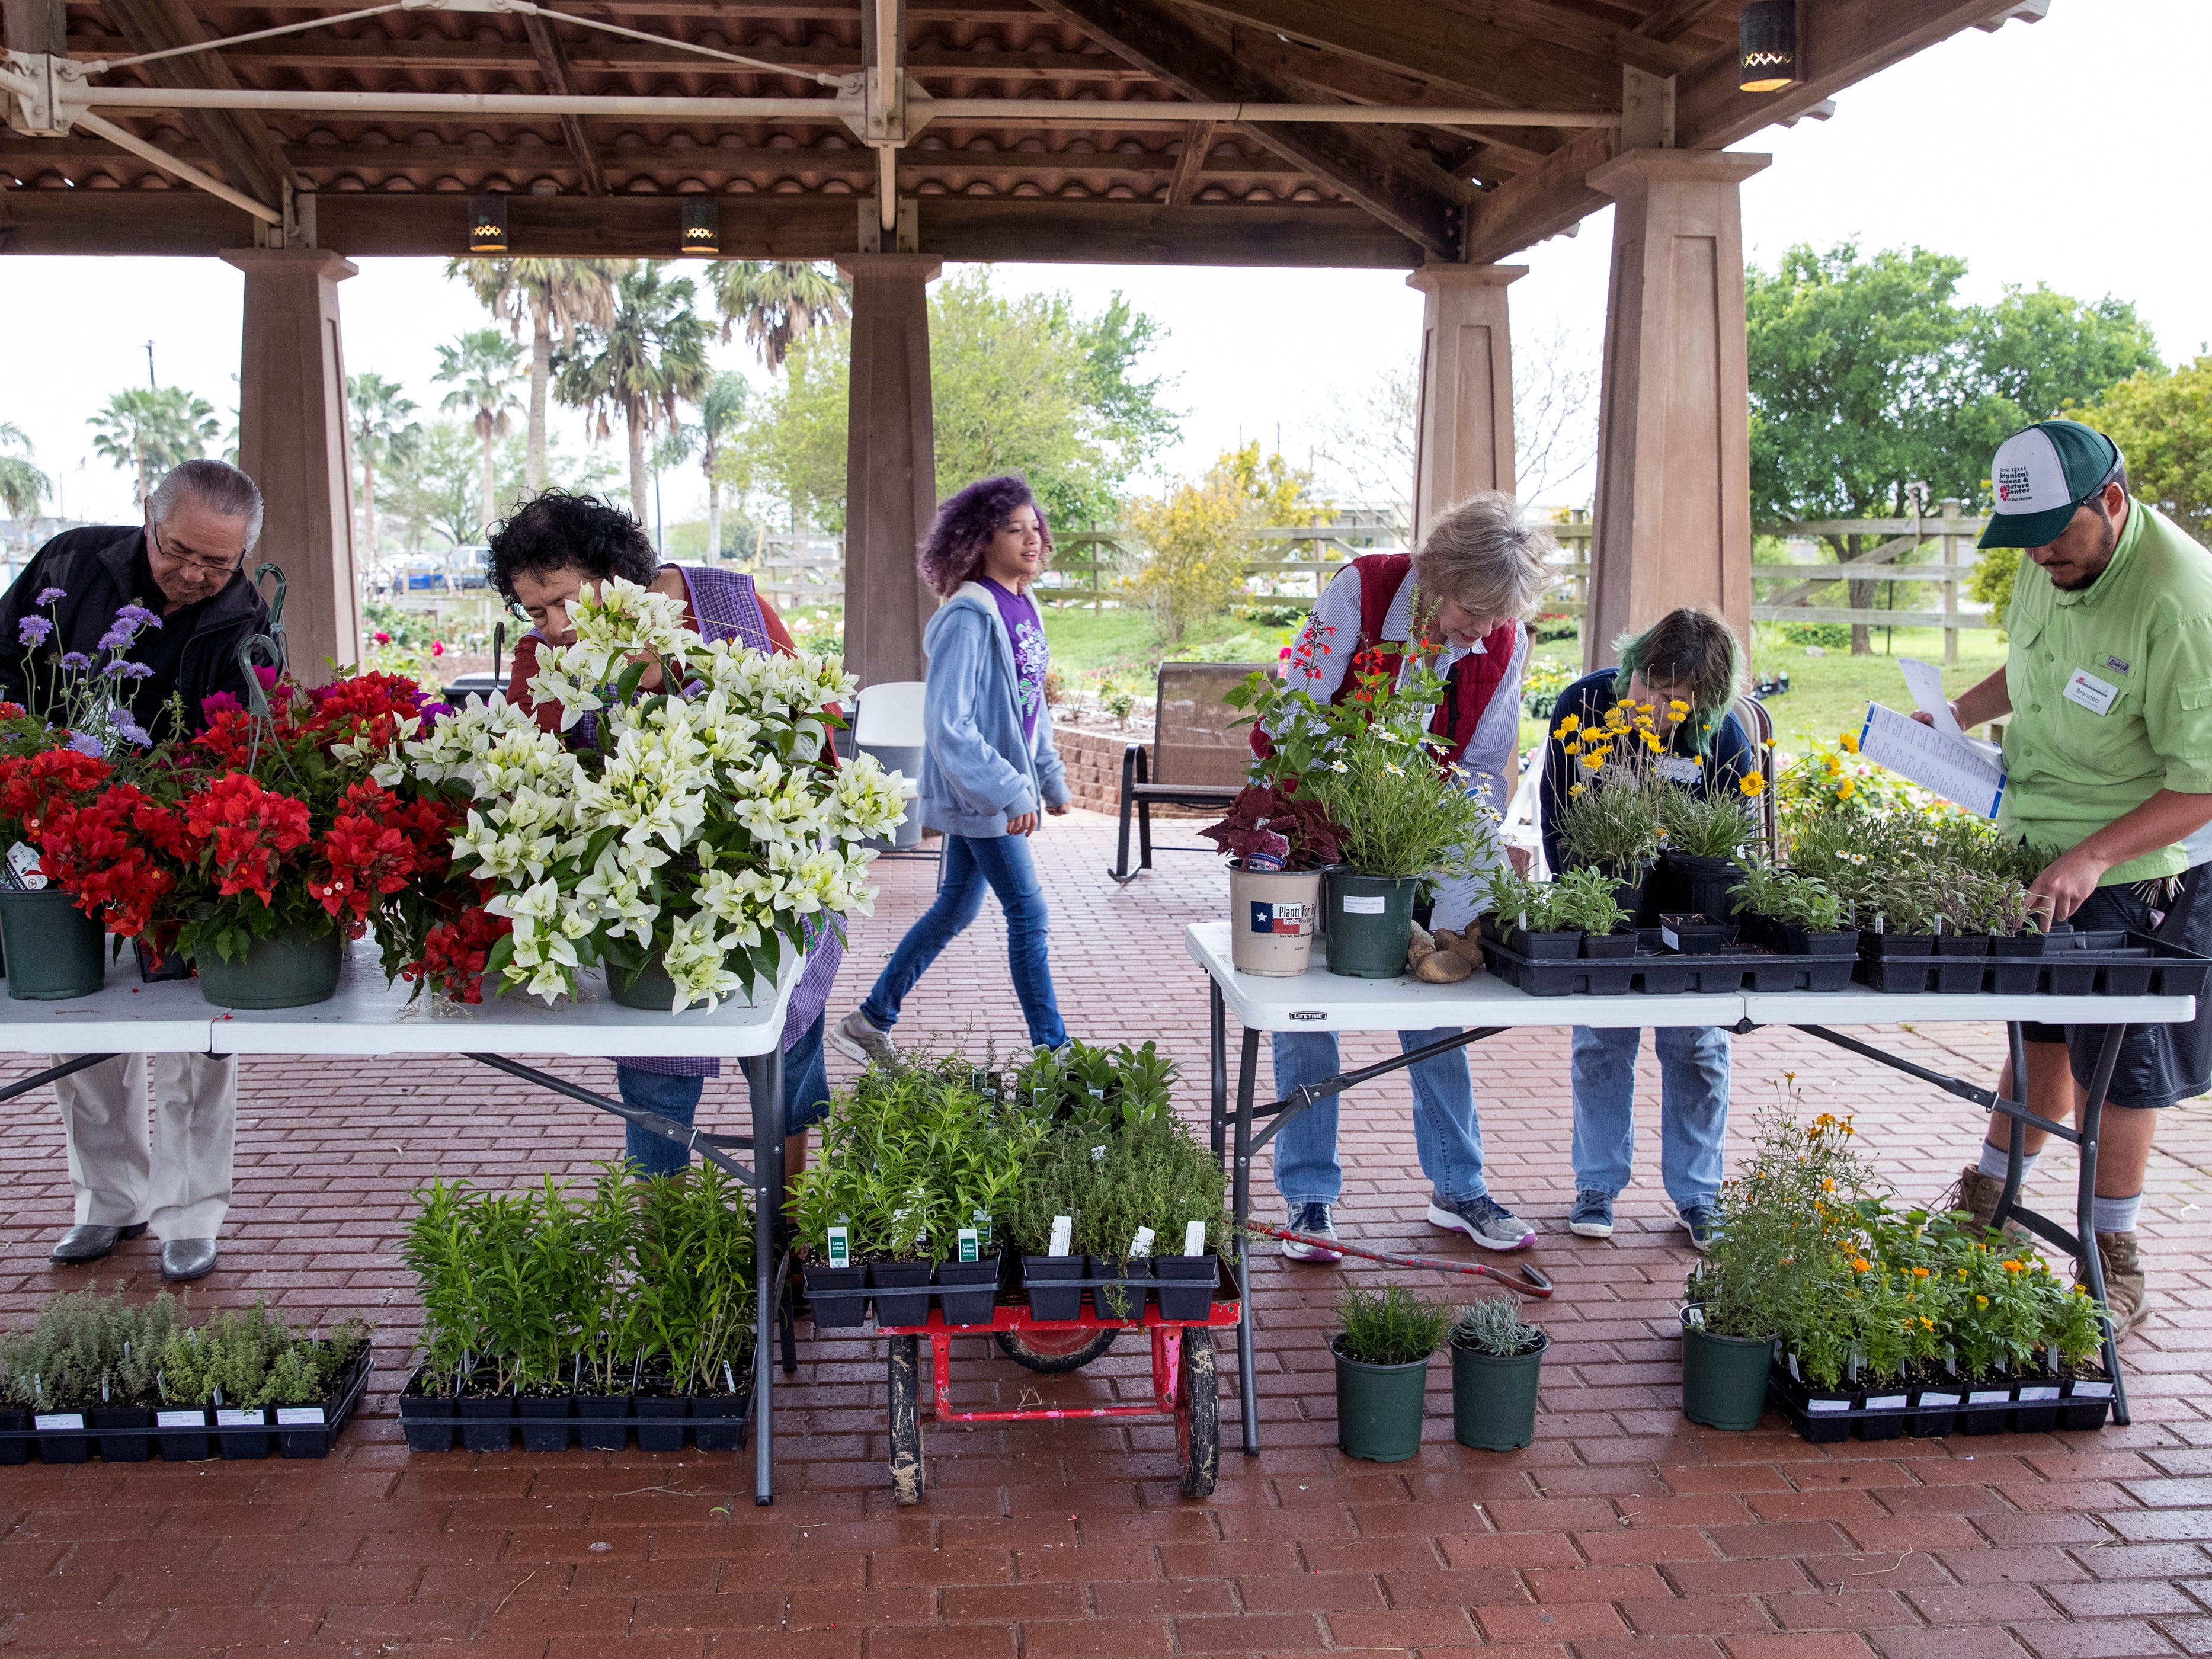 Volunteers Felix Ramirez (from left), Oralia Ramirez, Rory Diaz, 12, Karen Easton, Candy Tidmore, and Brandon Rodriguez, a Texas A&M University-Corpus Christi student, price plants on Thursday, April 4, 2019 in preparation for the annual Big Bloom which is Saturday at the South Texas Botanical Gardens & Nature Center. Thousands of varieties of plants have been ordered from wholesalers for the event. Nueces Master Gardeners will be on hand to help visitors pick their plants and answer care questions.